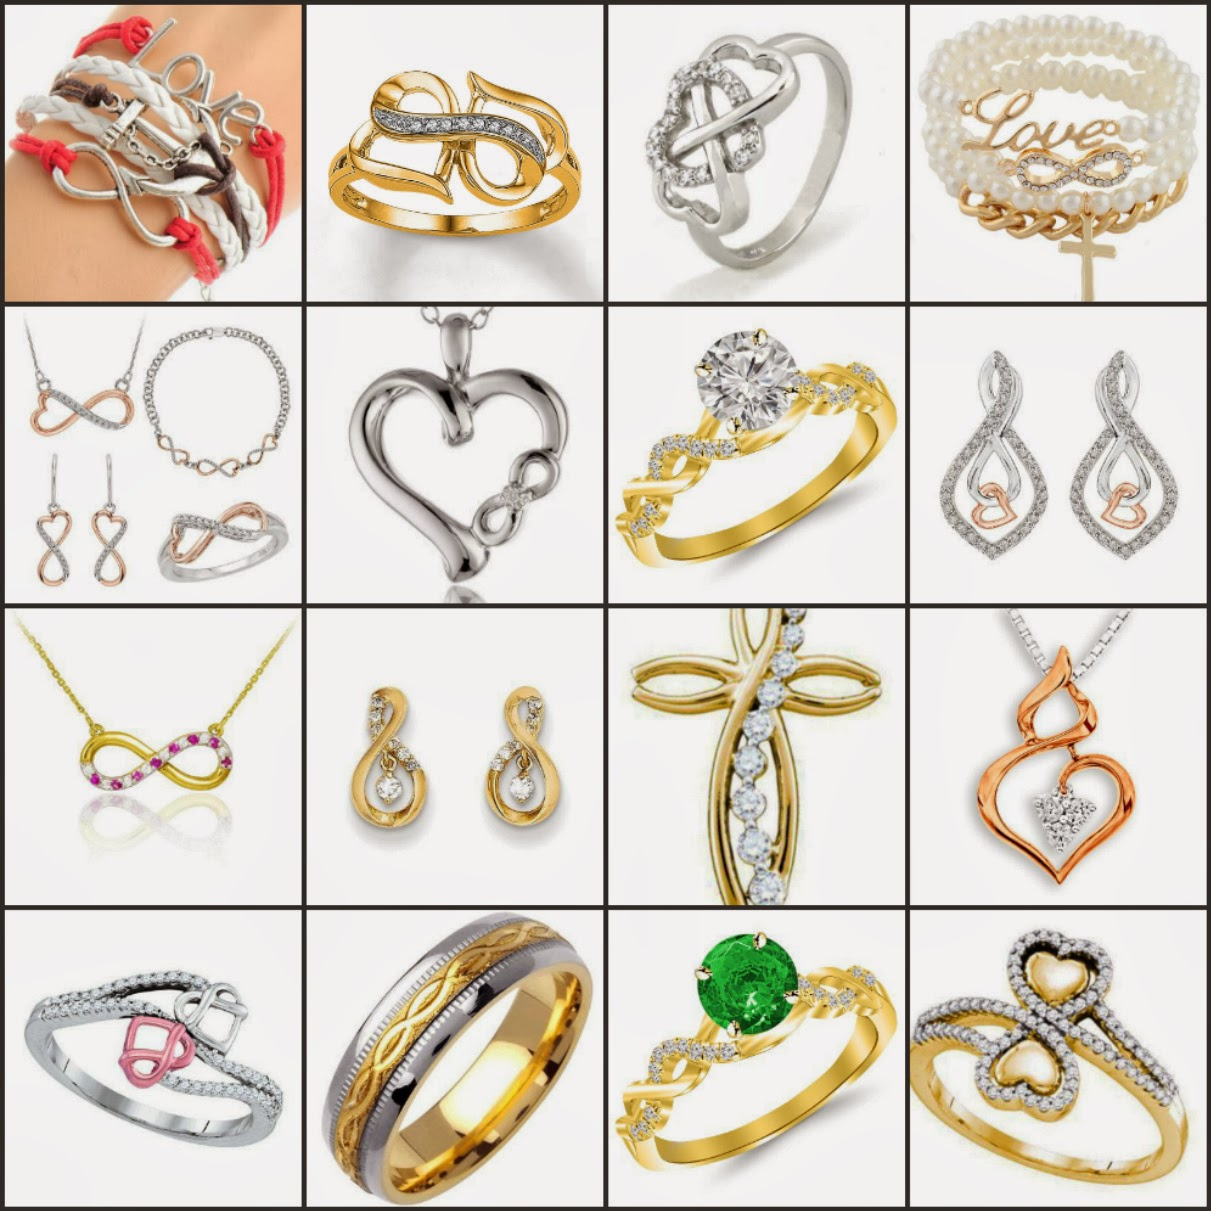 Infinity Jewelry - The timeless symbol